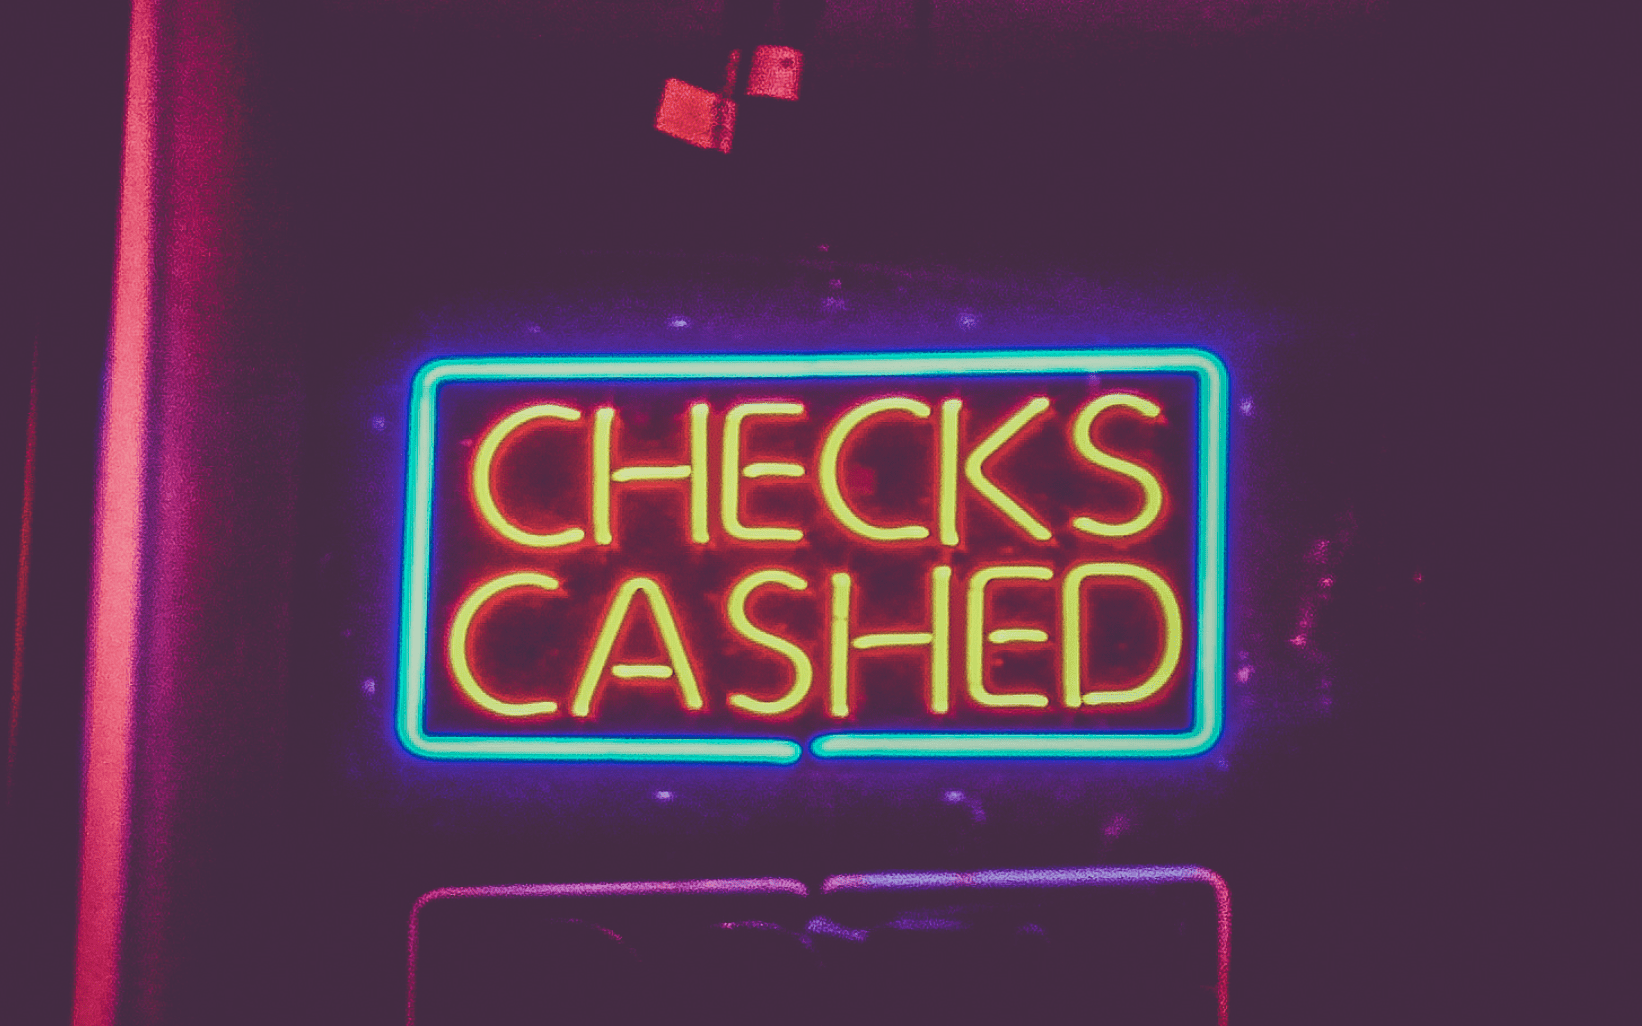 "Neon ""Checks cashed"" sign; image by Tony Webster from Oakland, California, CC BY 2.0, no changes."